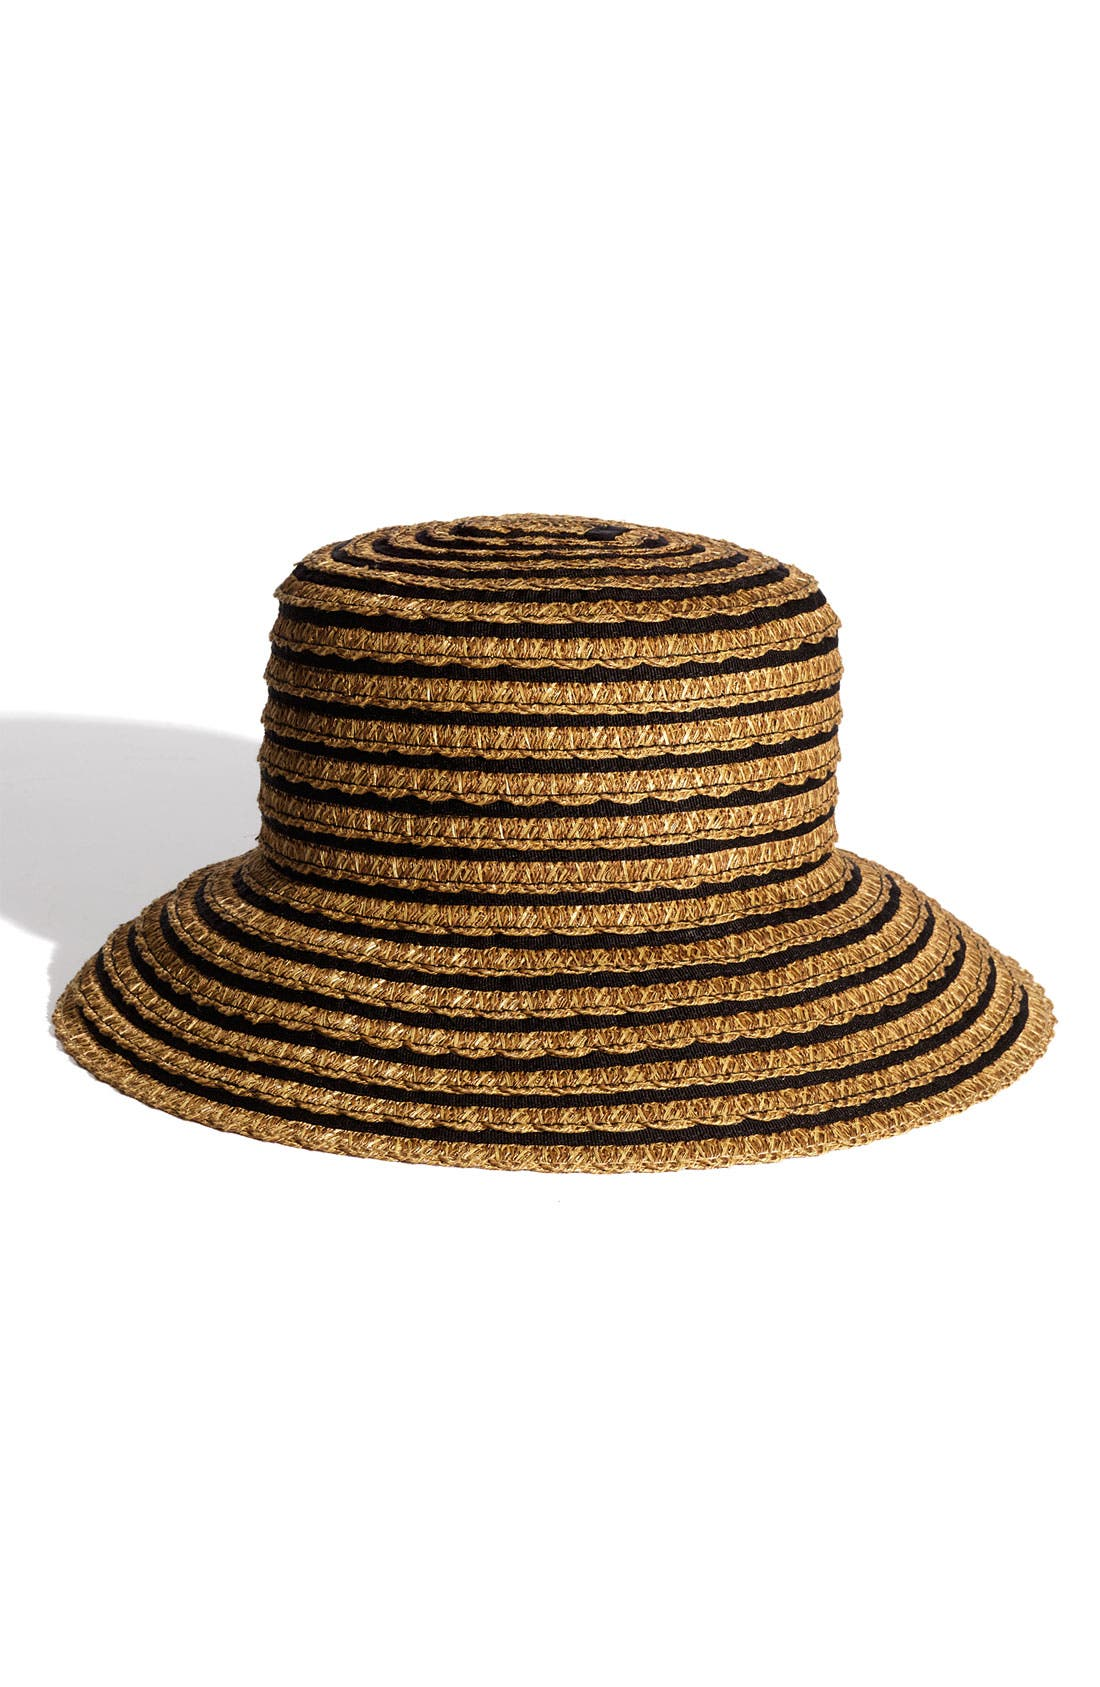 Main Image - Eric Javits 'Braid Dame' Hat